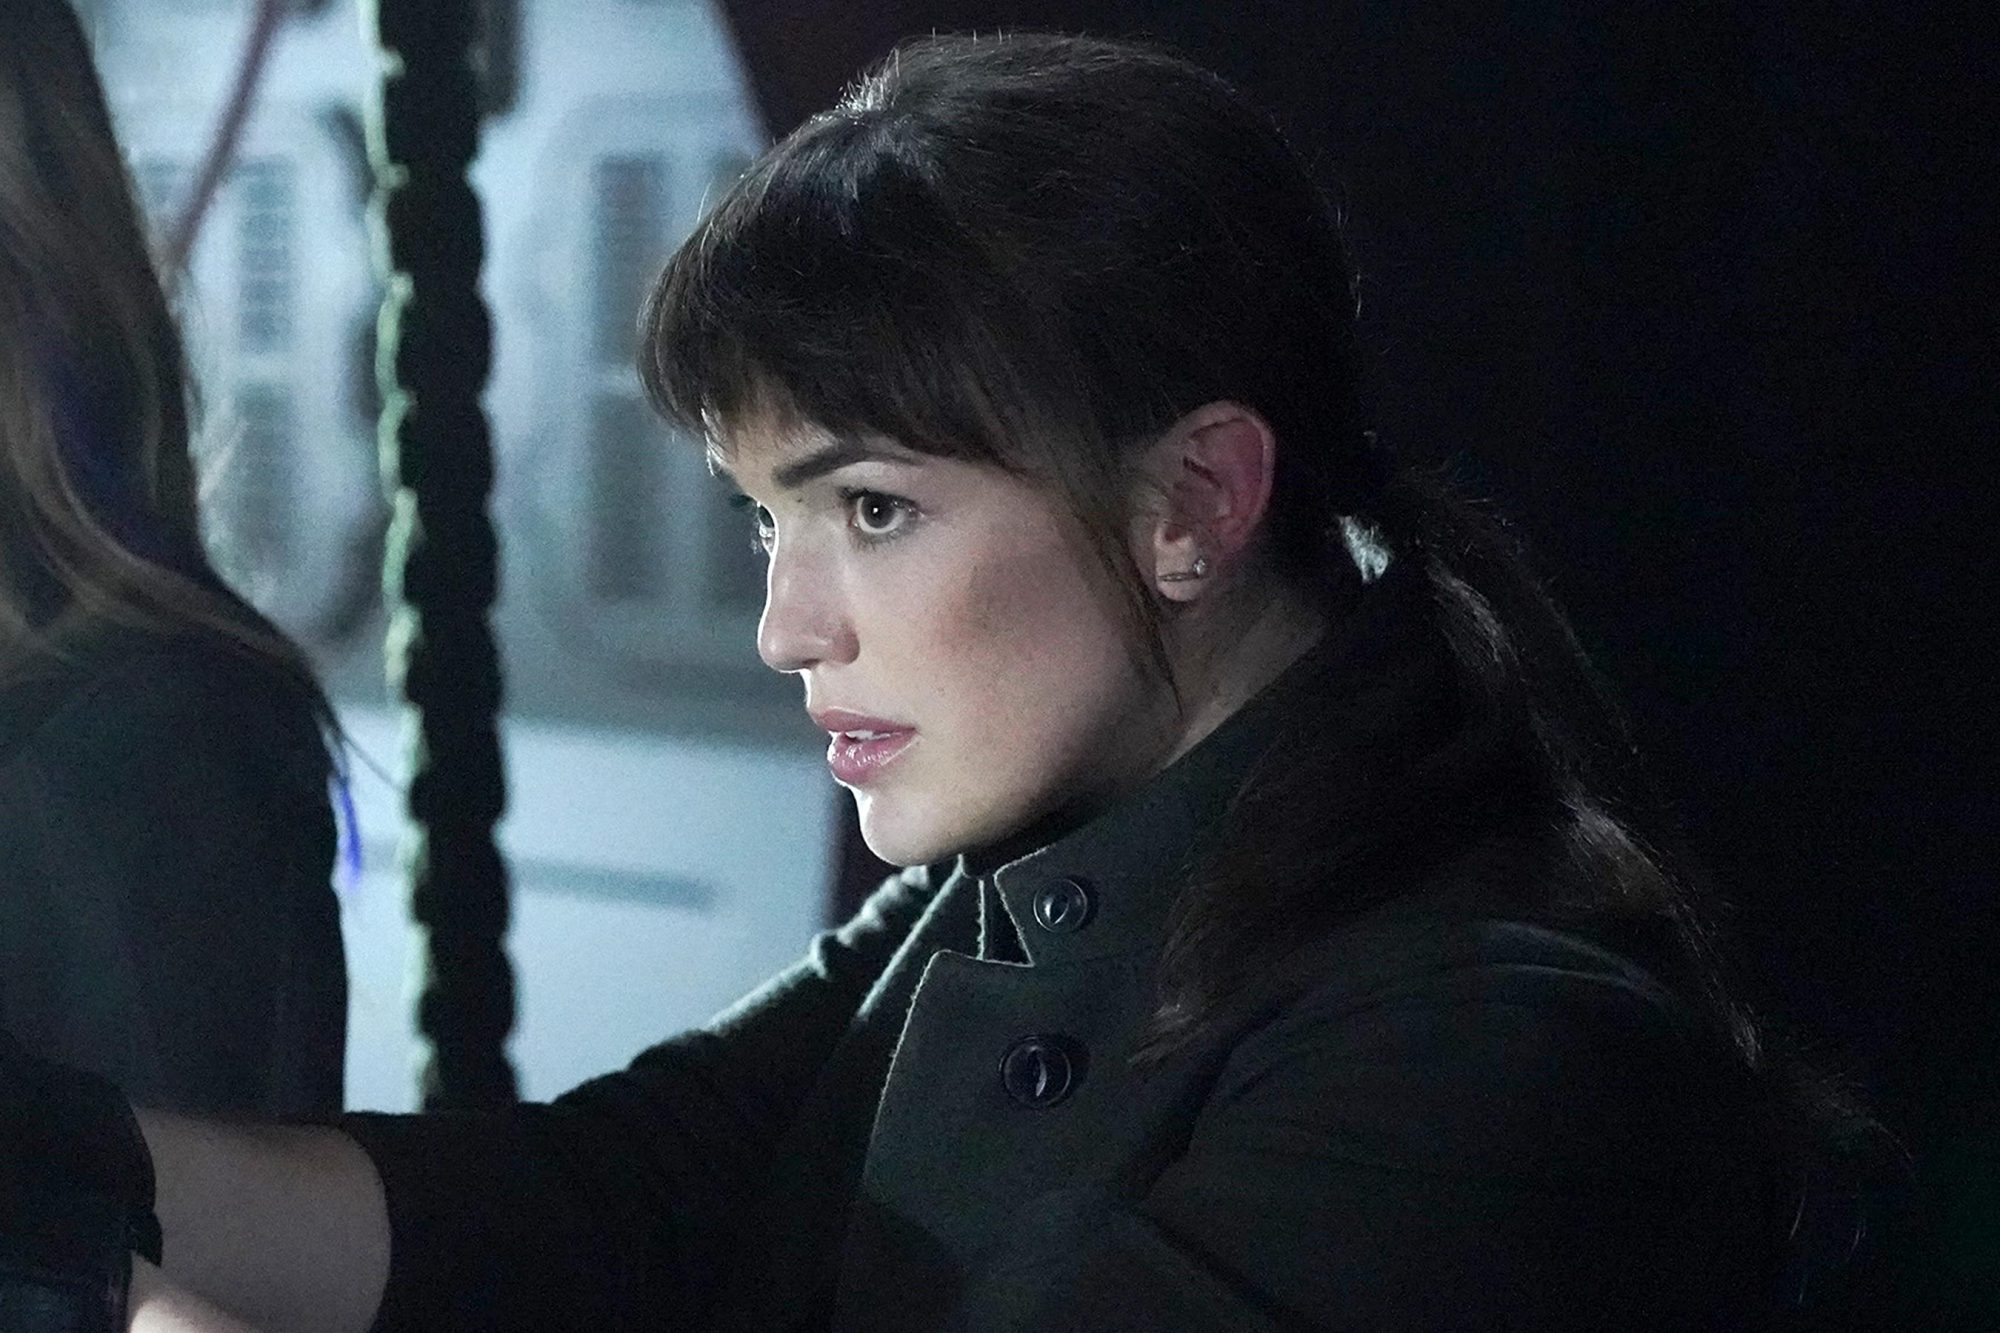 """MARVEL'S AGENTS OF S.H.I.E.L.D. - """"Missing Pieces"""" - Scattered across the galaxy, the team works to find their footing in the wake of losing Coulson in the spectacular Season 6 premiere of """"Marvel's Agents of S.H.I.E.L.D.,"""" FRIDAY, MAY 10 (8:00-9:00 p.m. EDT, on The ABC Television Network. (ABC/Mitch Haaseth) CHLOE BENNET, ELIZABETH HENSTRIDGE"""